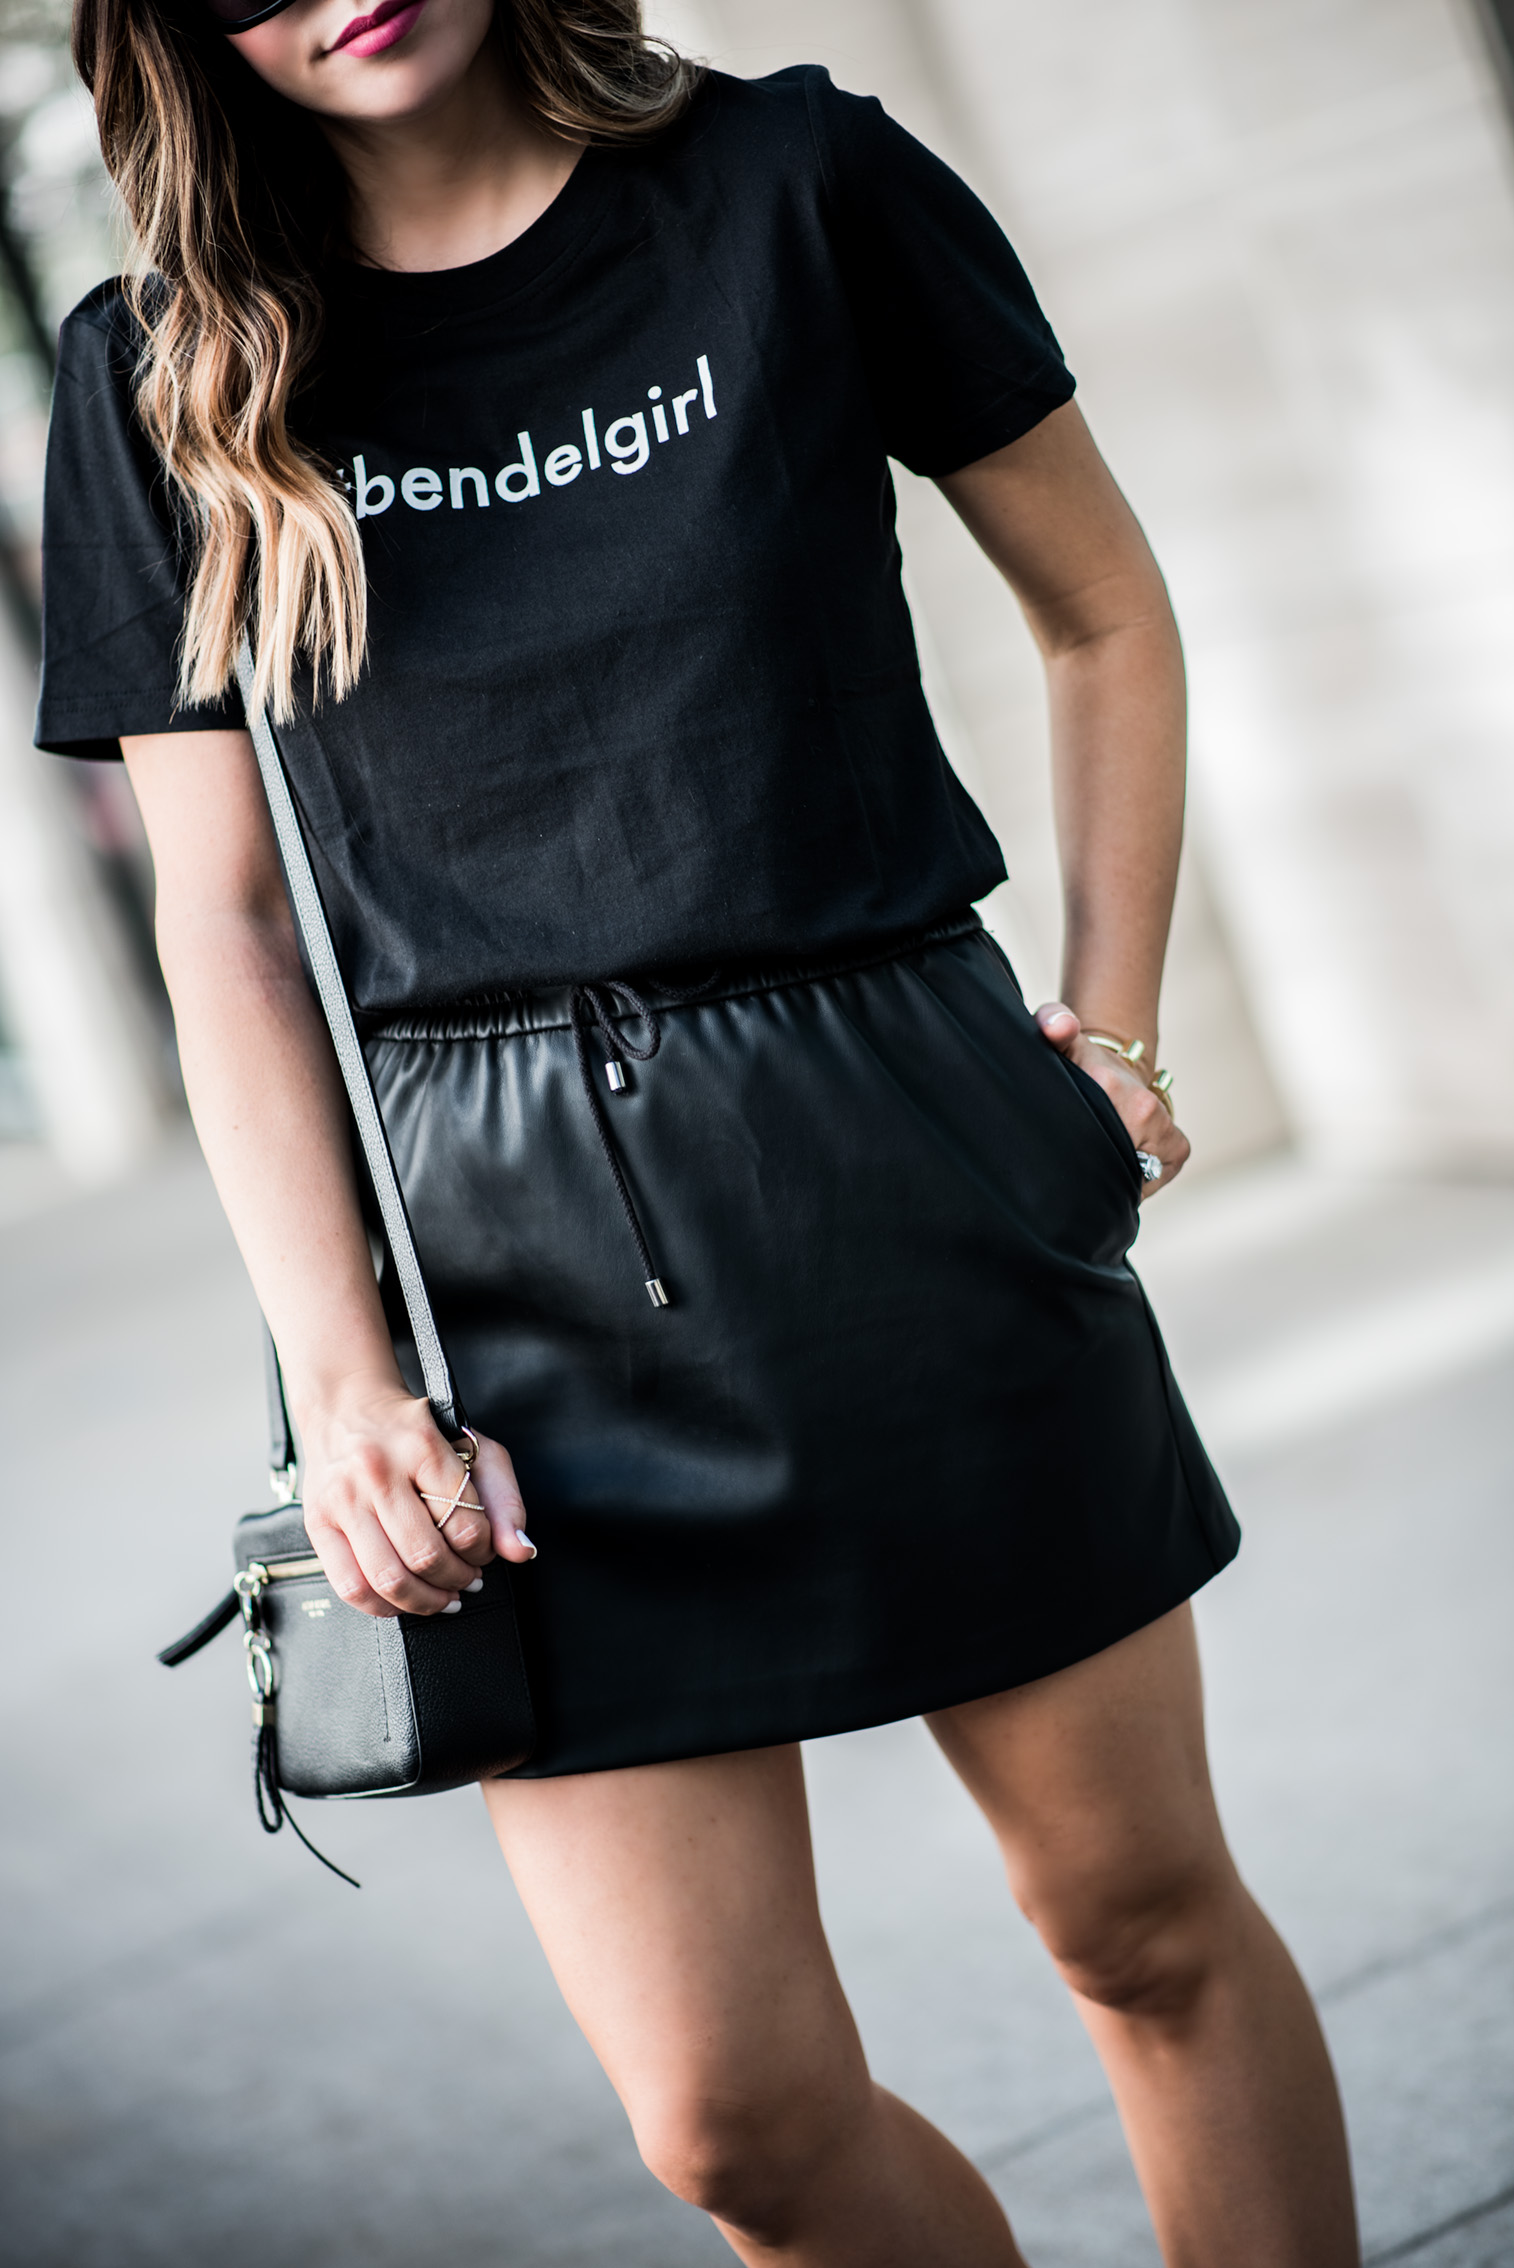 Tiffany Jais Houston fashion and lifestyle blogger | Friday feels + weekend sales | Bendelgirl tee, leather skirt, sneaker outfit ideas